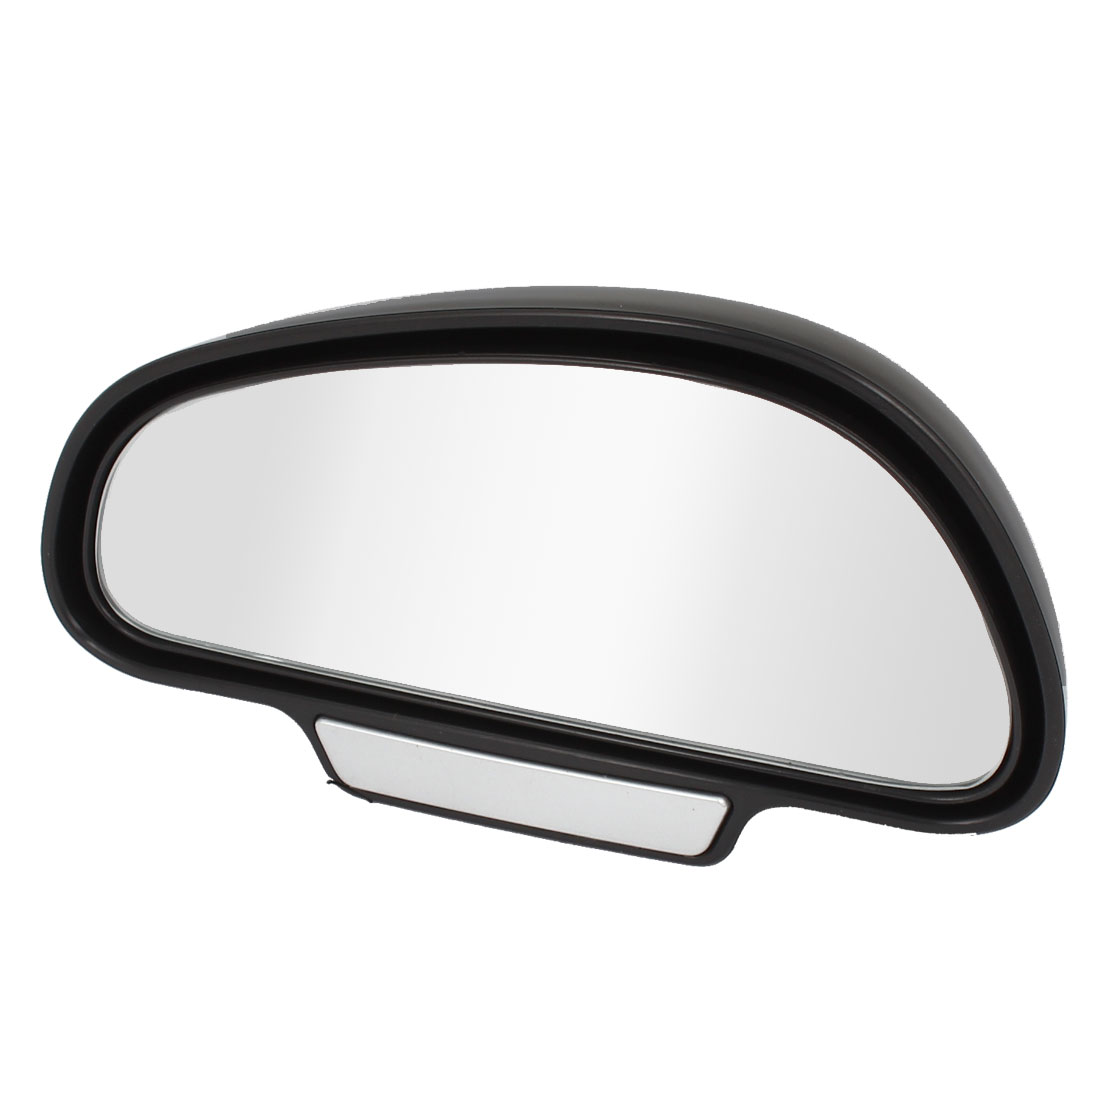 Vehicle Car Black Plastic Left Side Adjustable Rearview Blind Spot Mirror